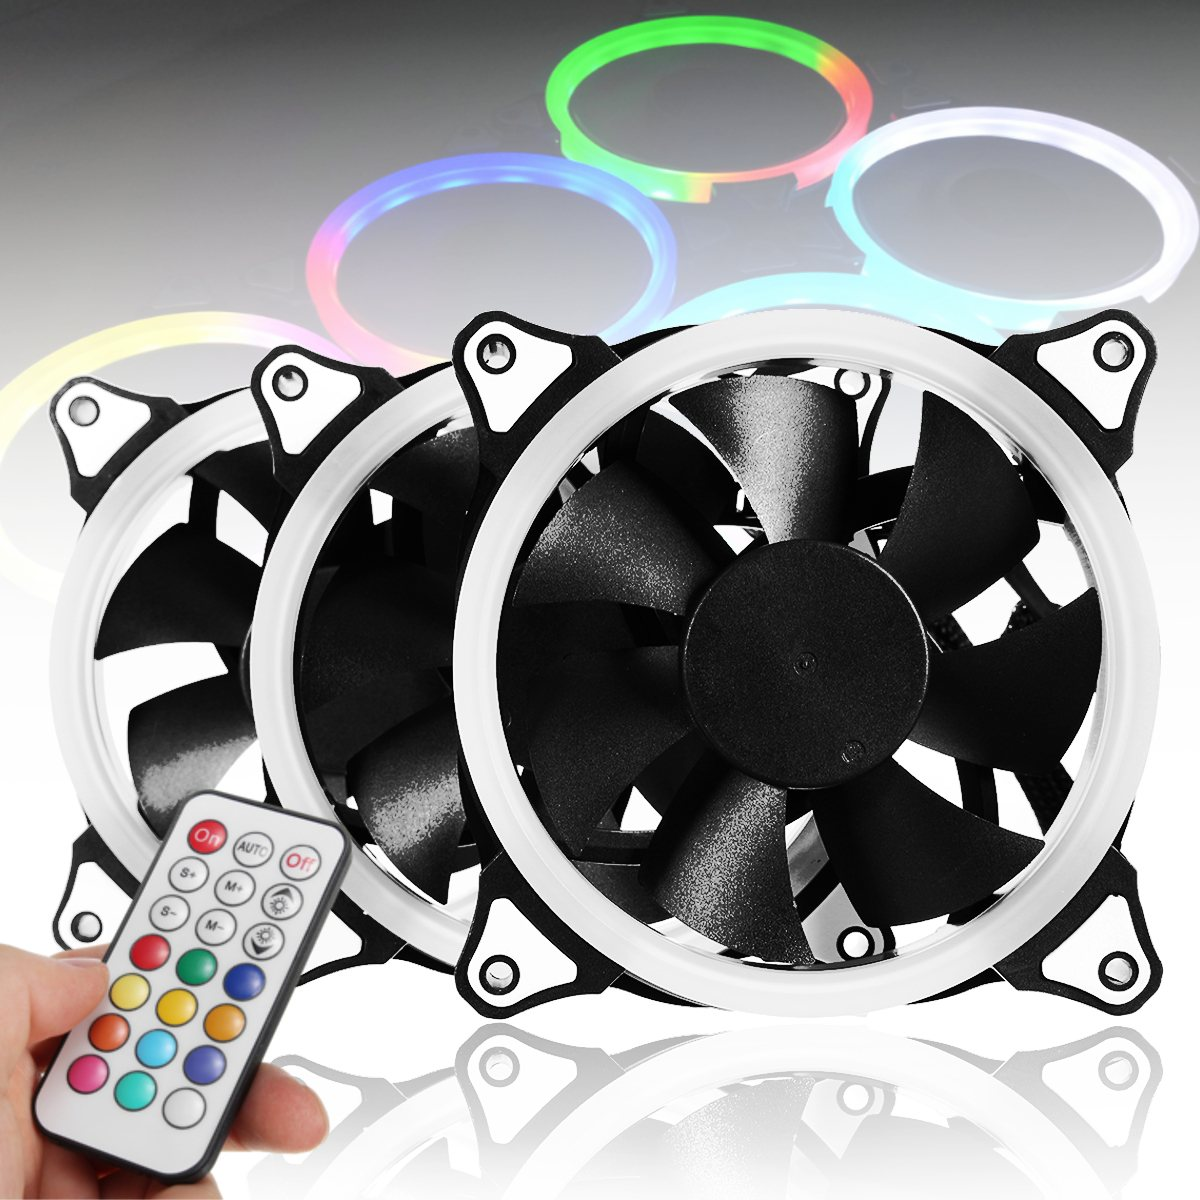 3pcs 12V 120mm Computer Case PC Cooling Fan RGB Adjustable LED Quiet + IR Remote New Silent fan Cooling Cooler Fan For CPU 4 in 1 multifunction charging dock station cooling fan external cooler dual charger for xbox one controllers s game console